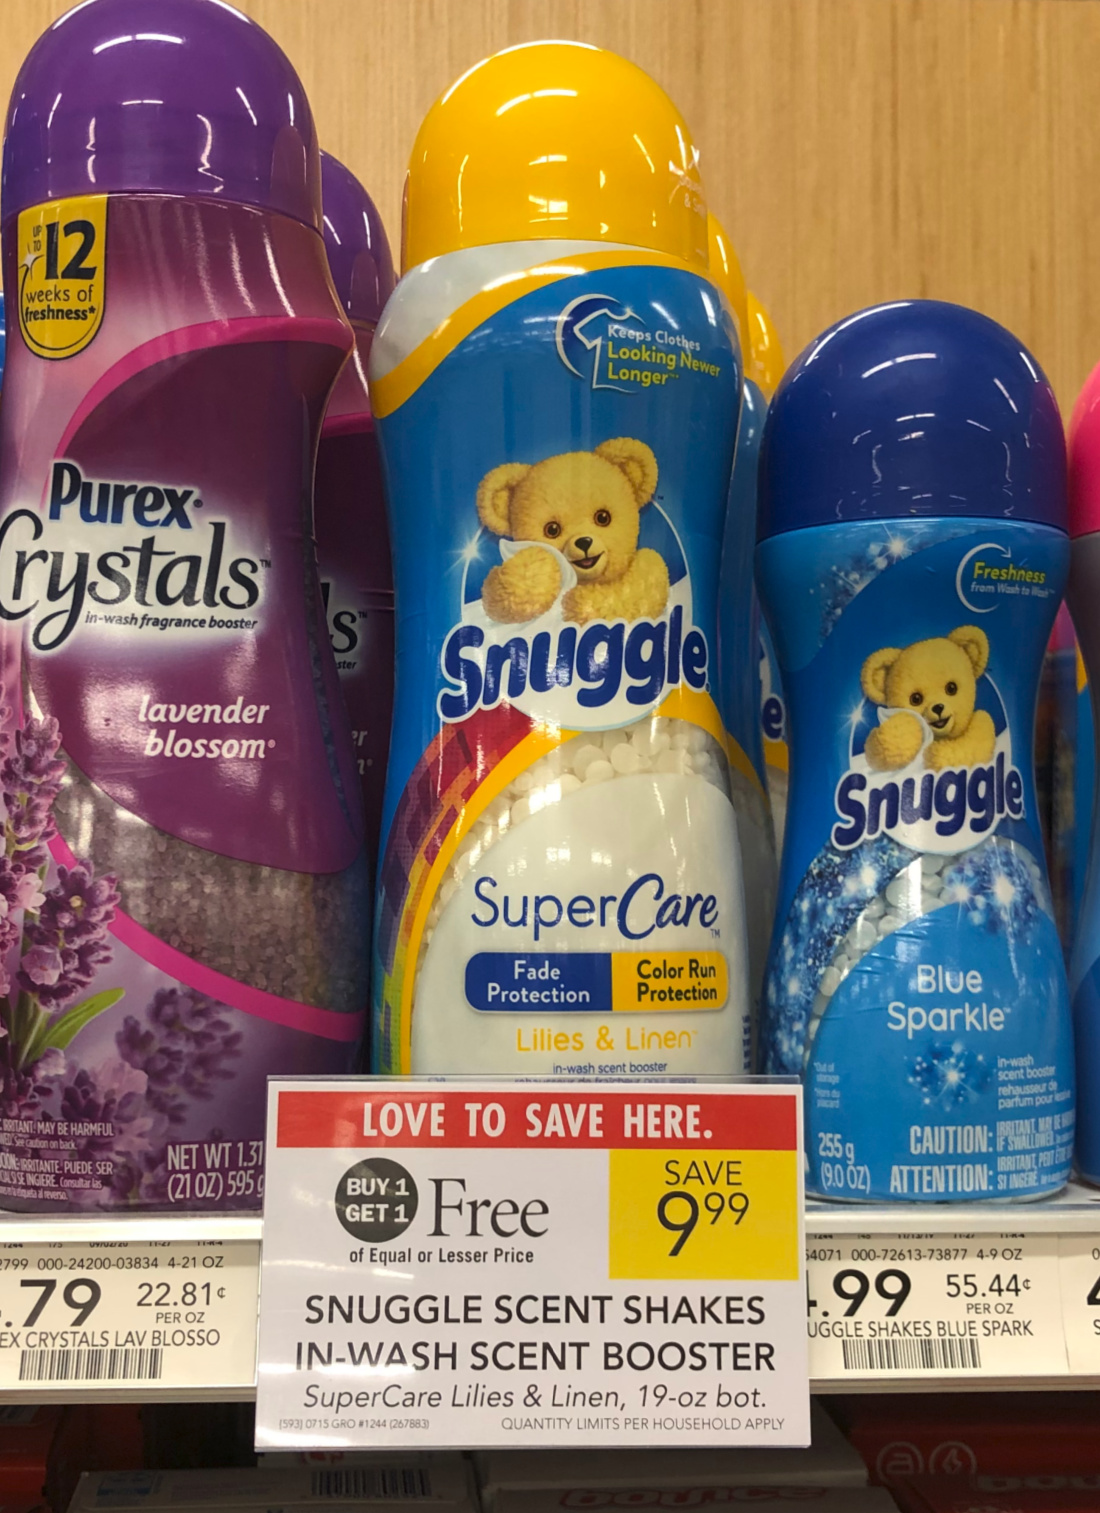 Snuggles Scent Shakes In-Wash Scent Booster As Low As $3 At Publix on I Heart Publix